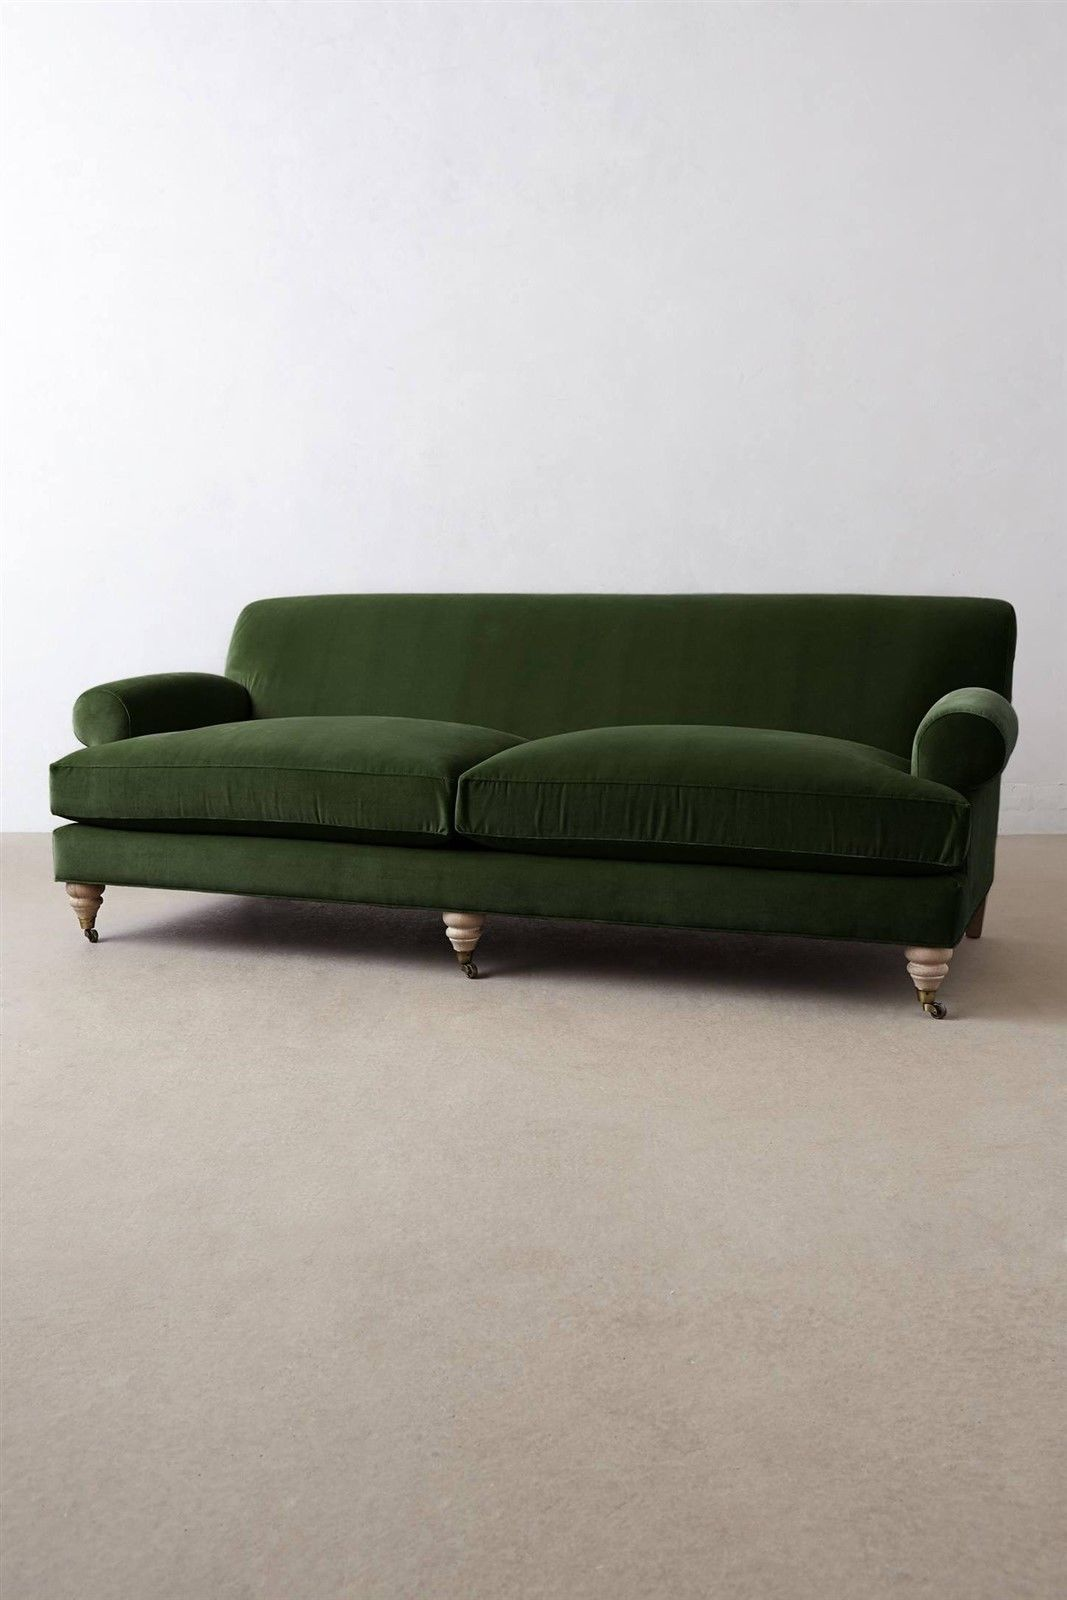 Velvet Couch Sofa Settee English Arms Rolled Emerald Green